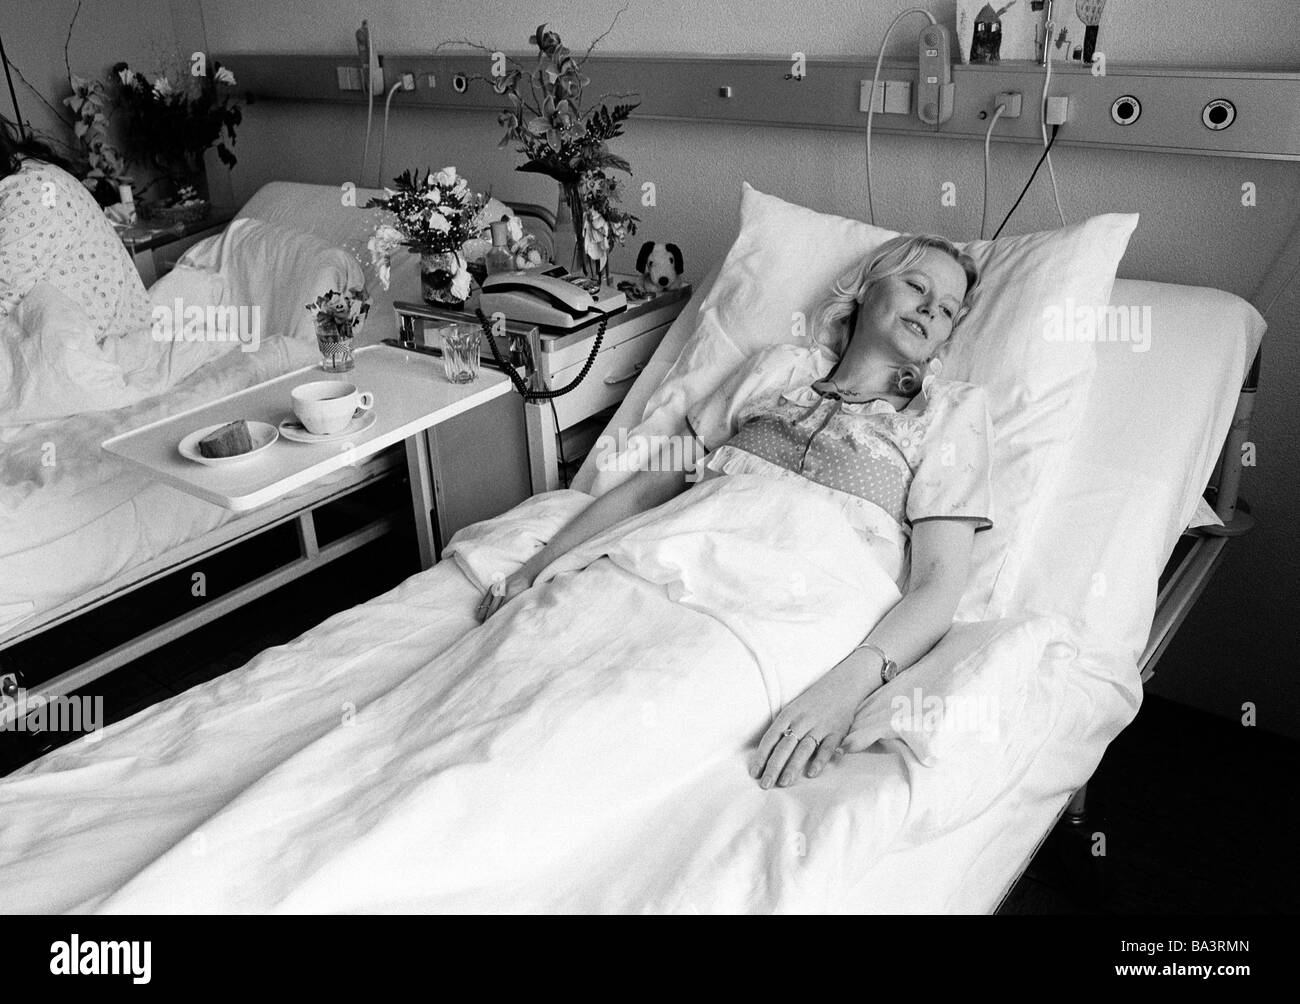 Eighties, black and white photo, people, health, young woman lies in a sickbed of a hospital, aged 30 to 40 years, - Stock Image